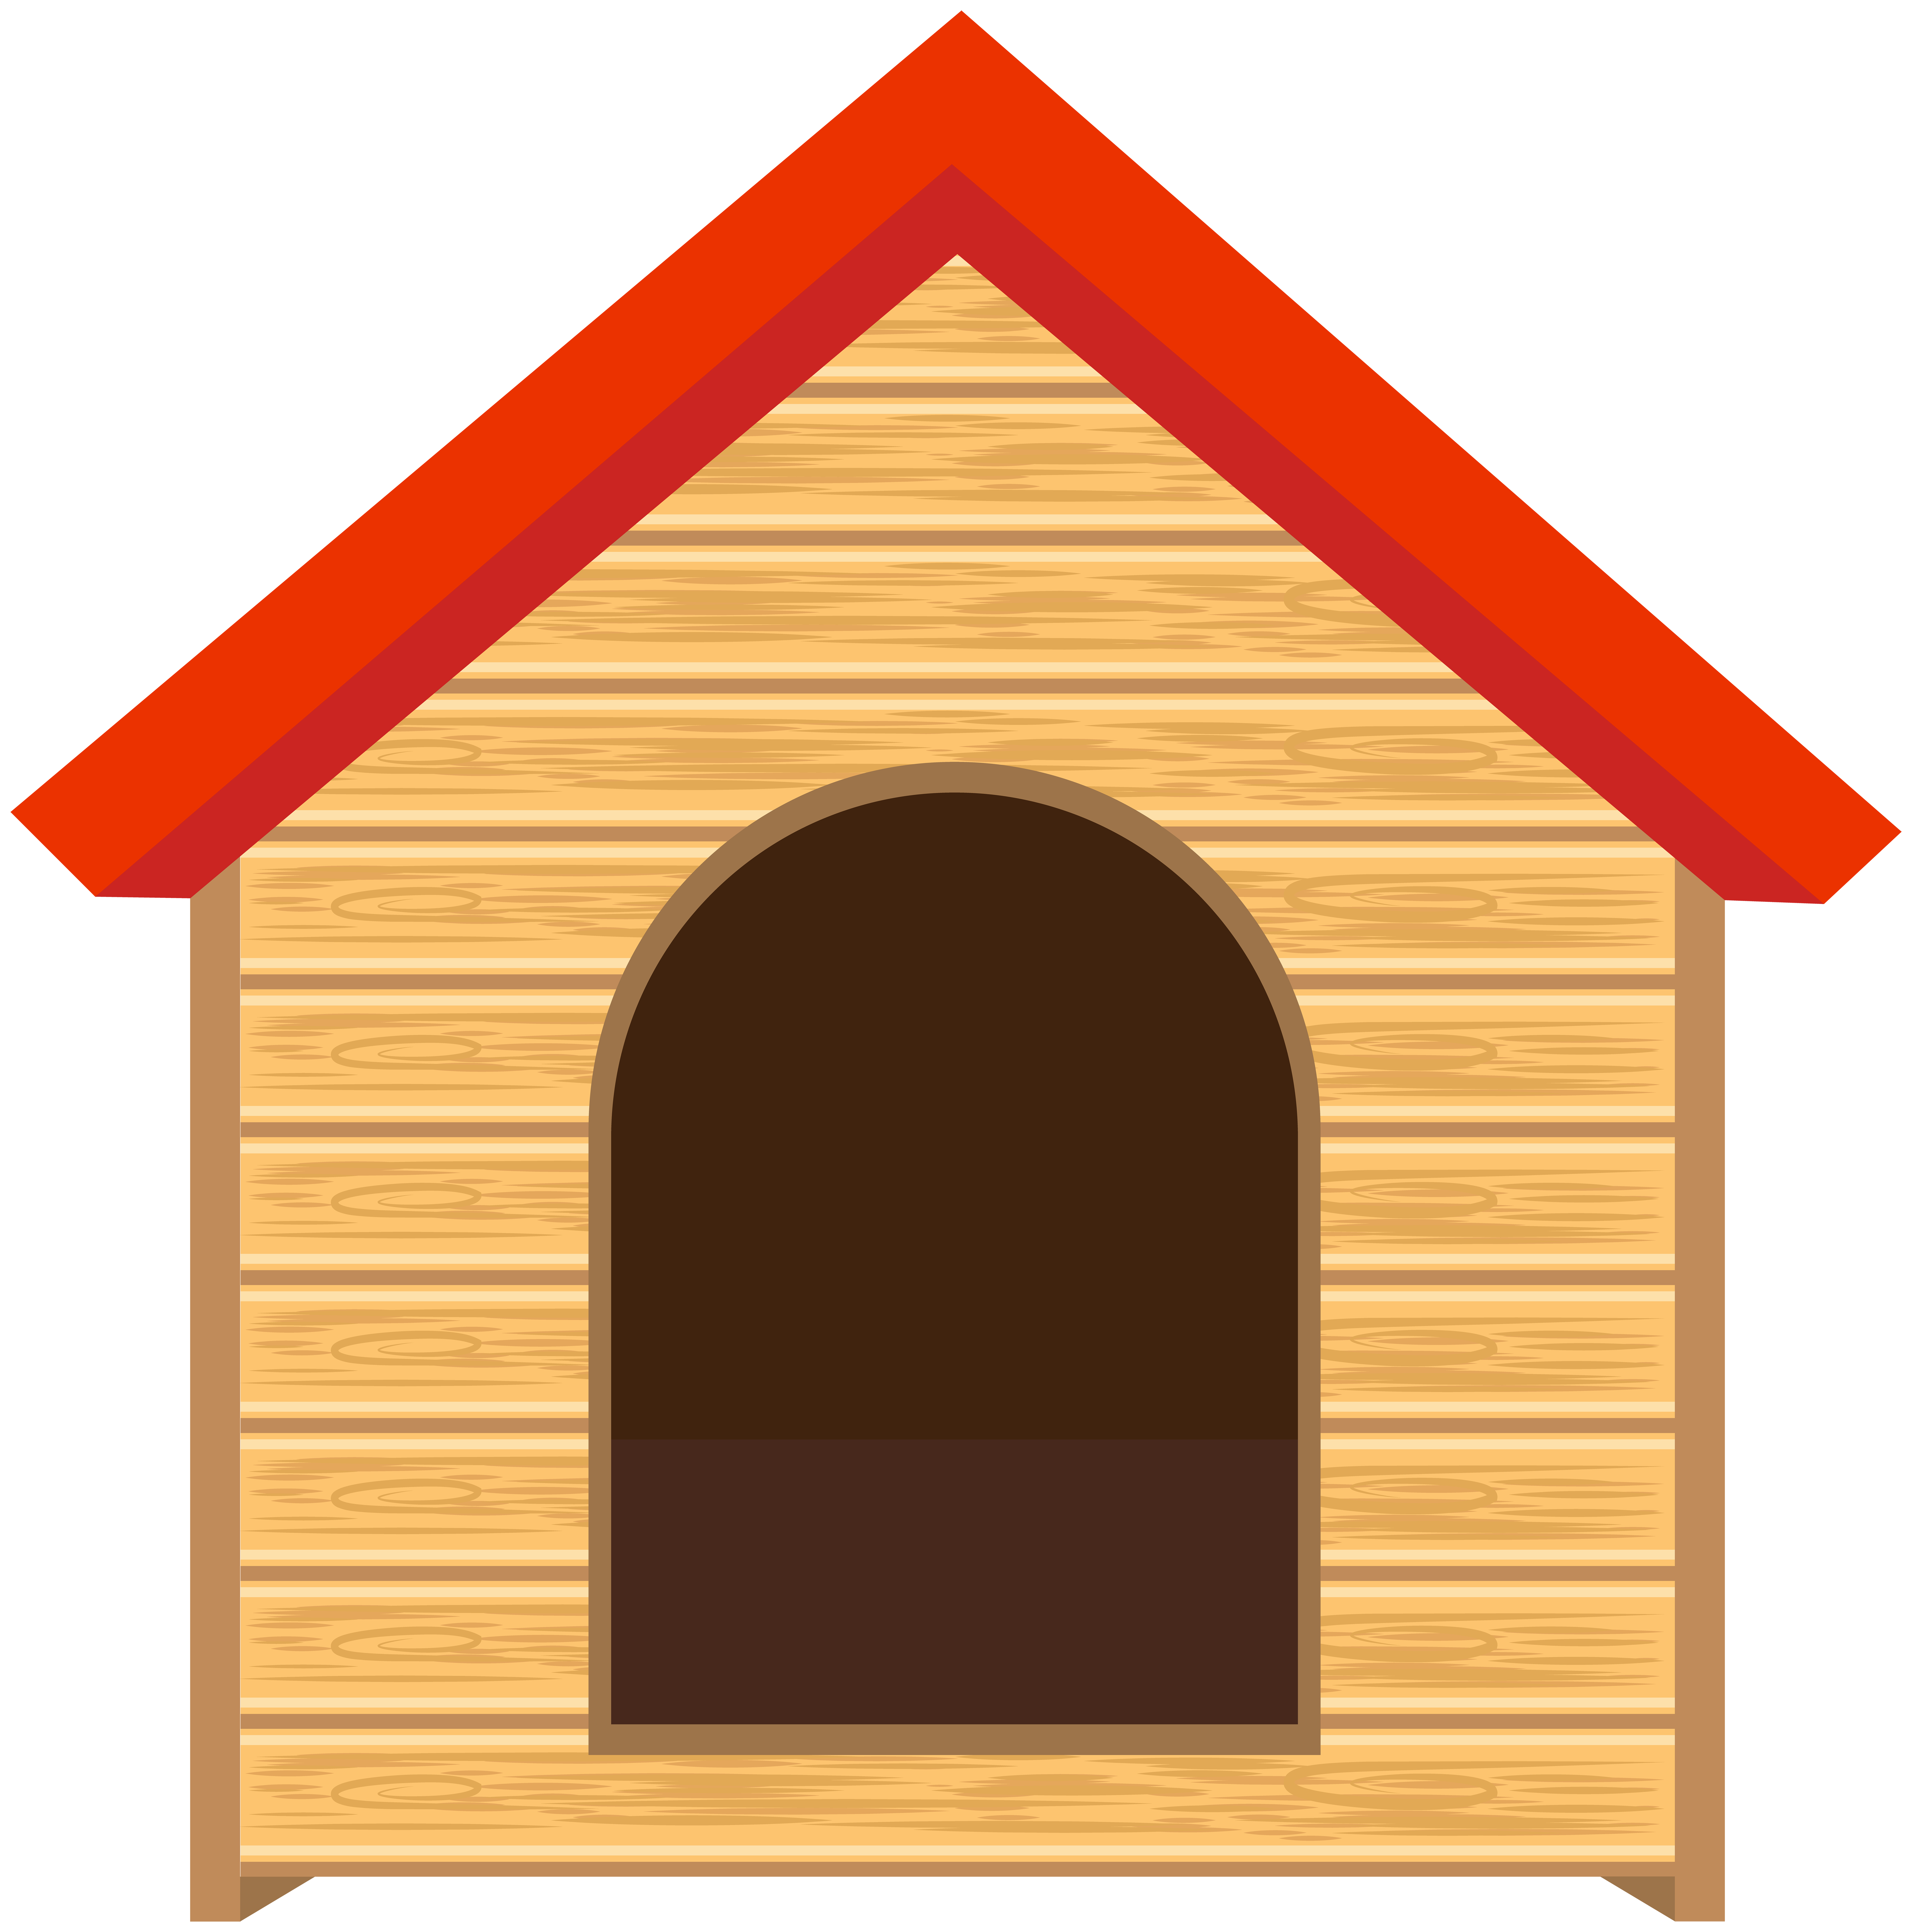 Doghouse Png - Doghouse PNG Clip Art Image - Best WEB Clipart